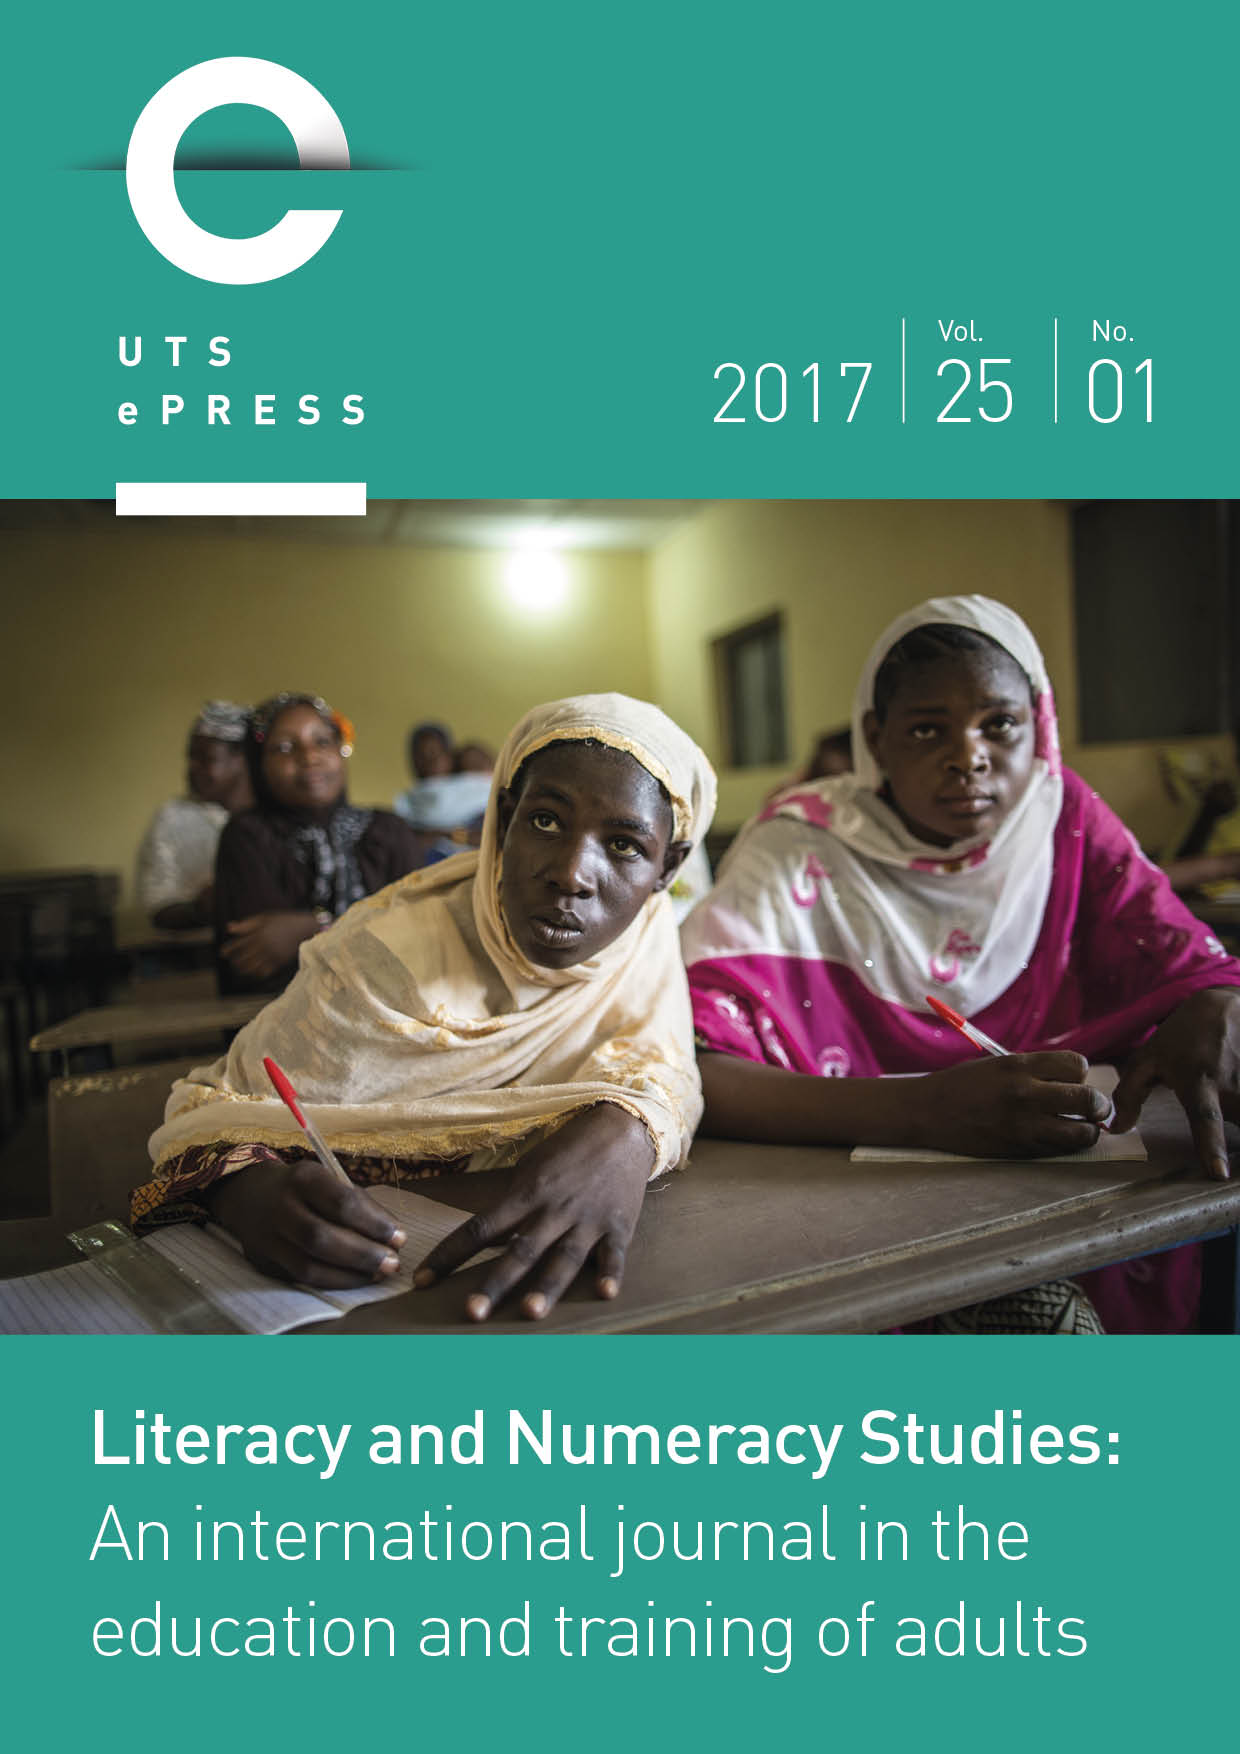 Literacy and Numeracy Studies cover: Volume 25, Issue 1 (2017).